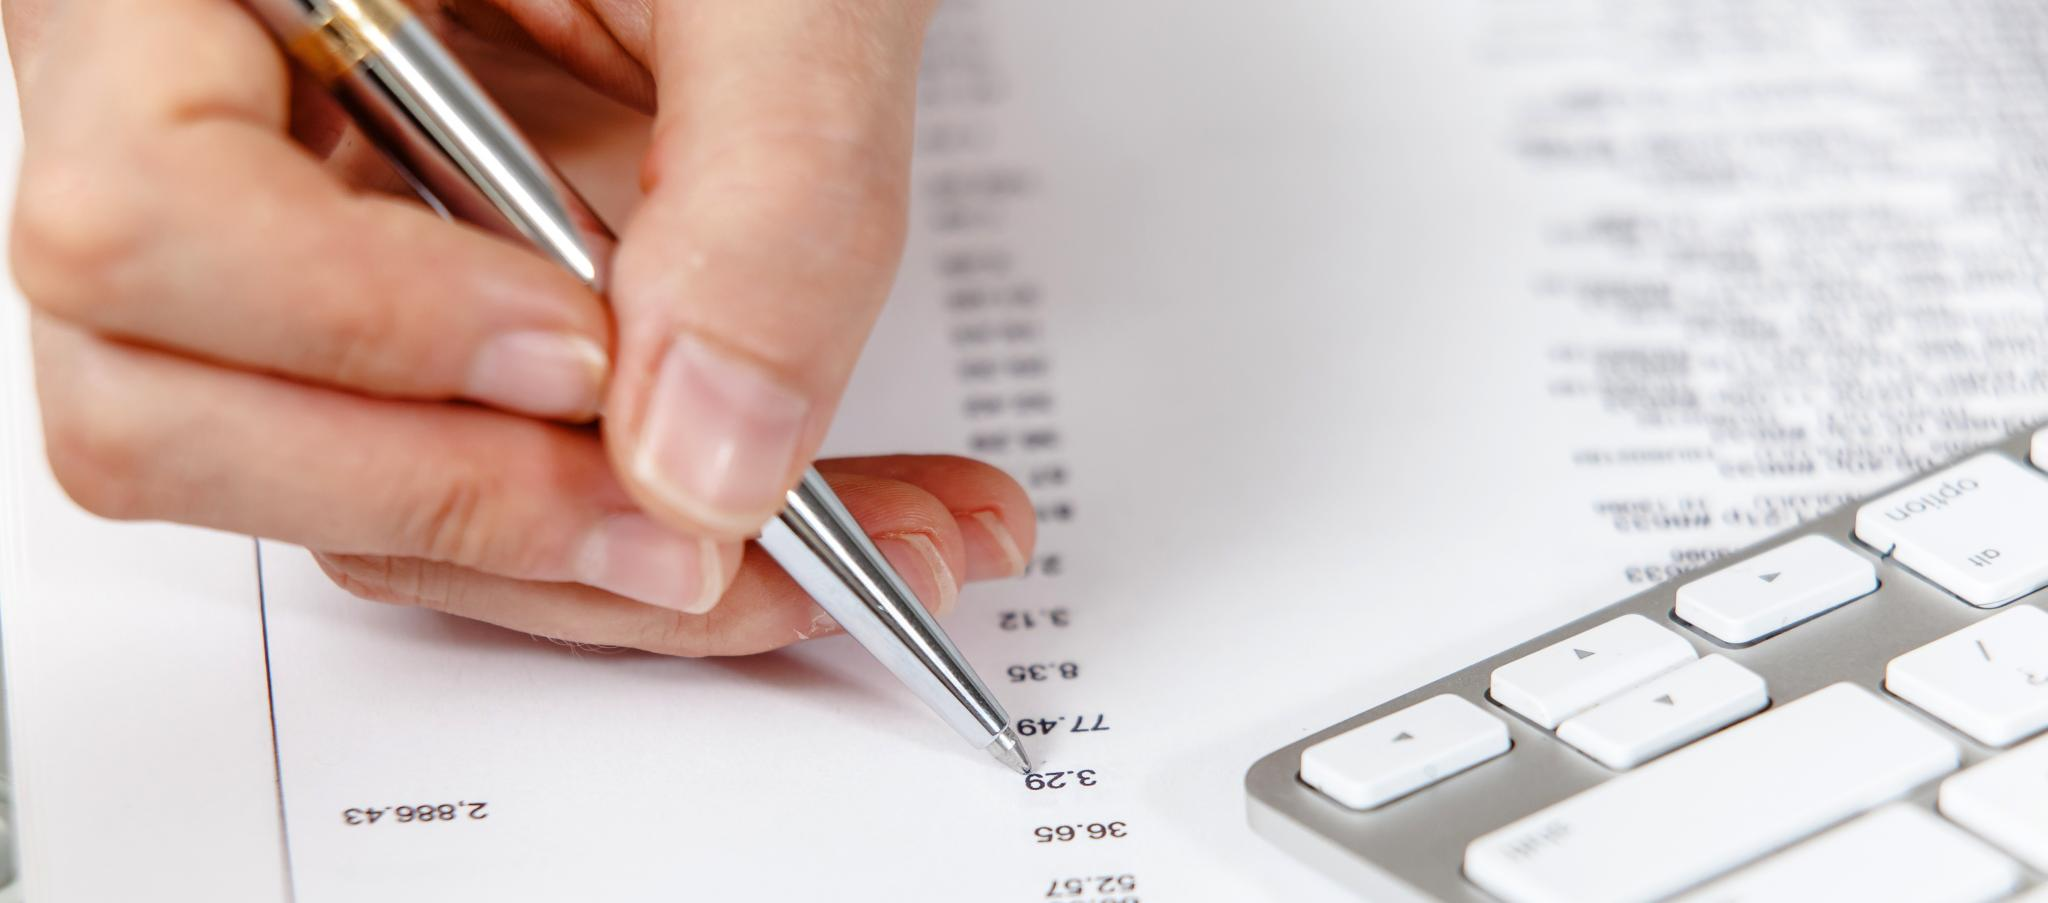 Are you checking your financial statements?